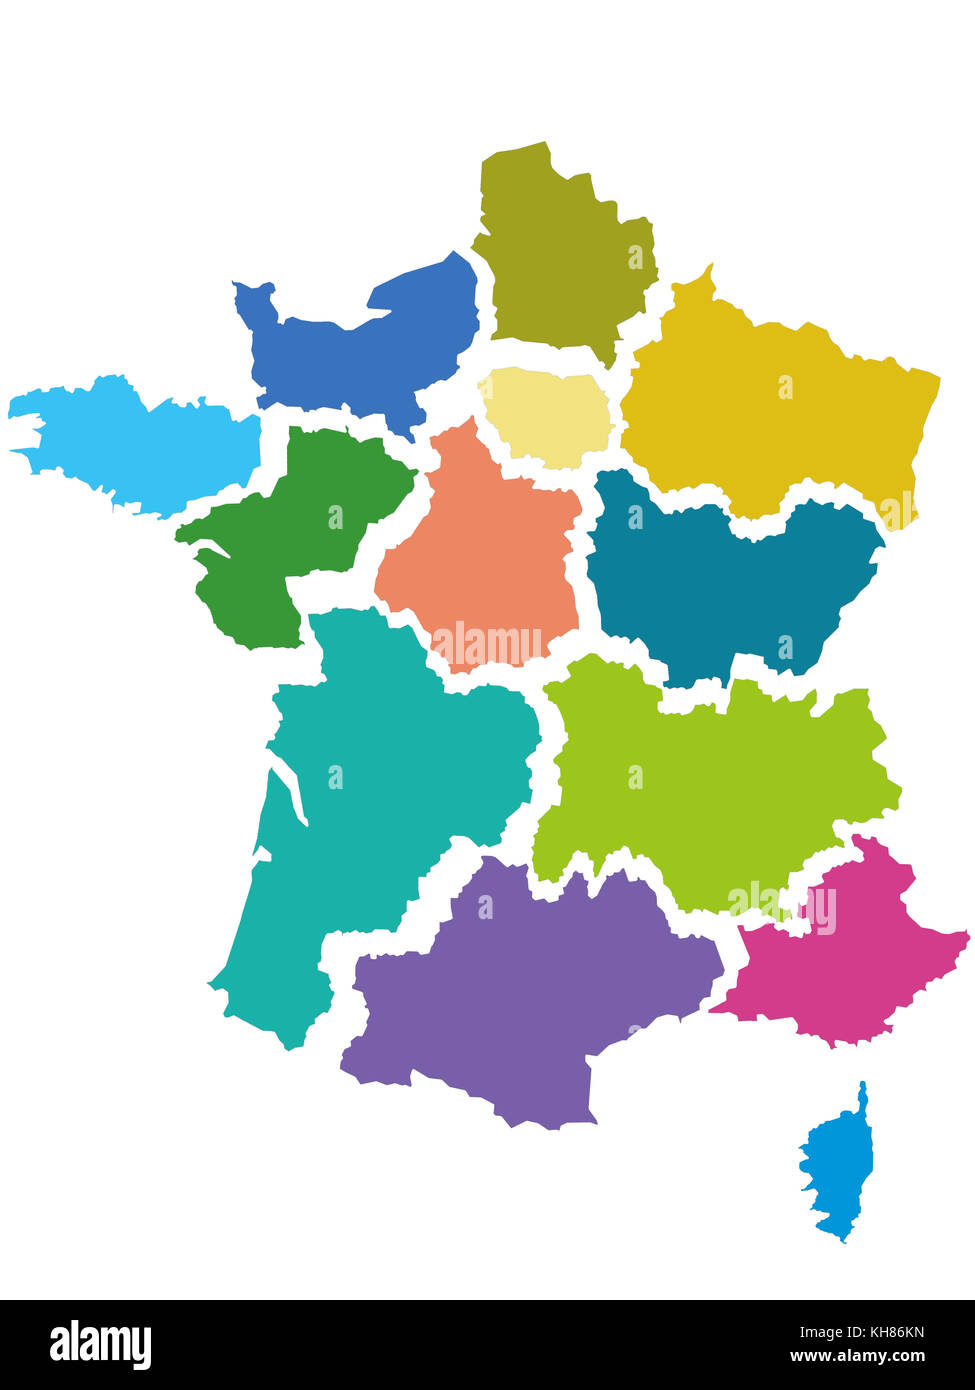 Map Of France New Regions.Map Of France With The 13 Regions Adopted By The Assemblee